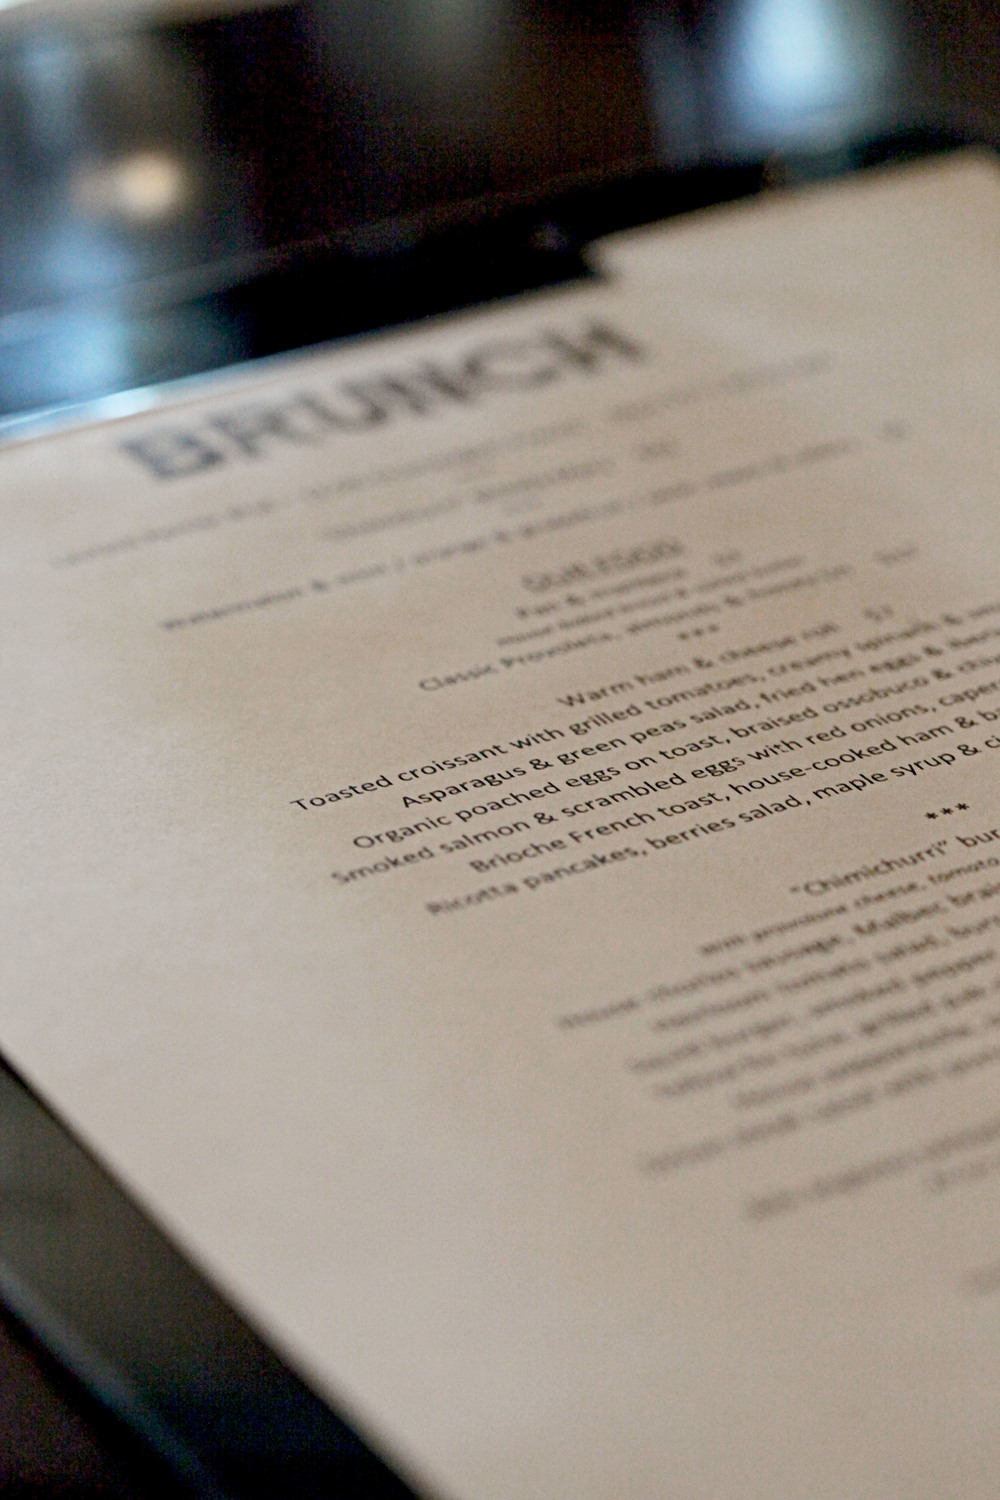 boCHINche's brunch menu